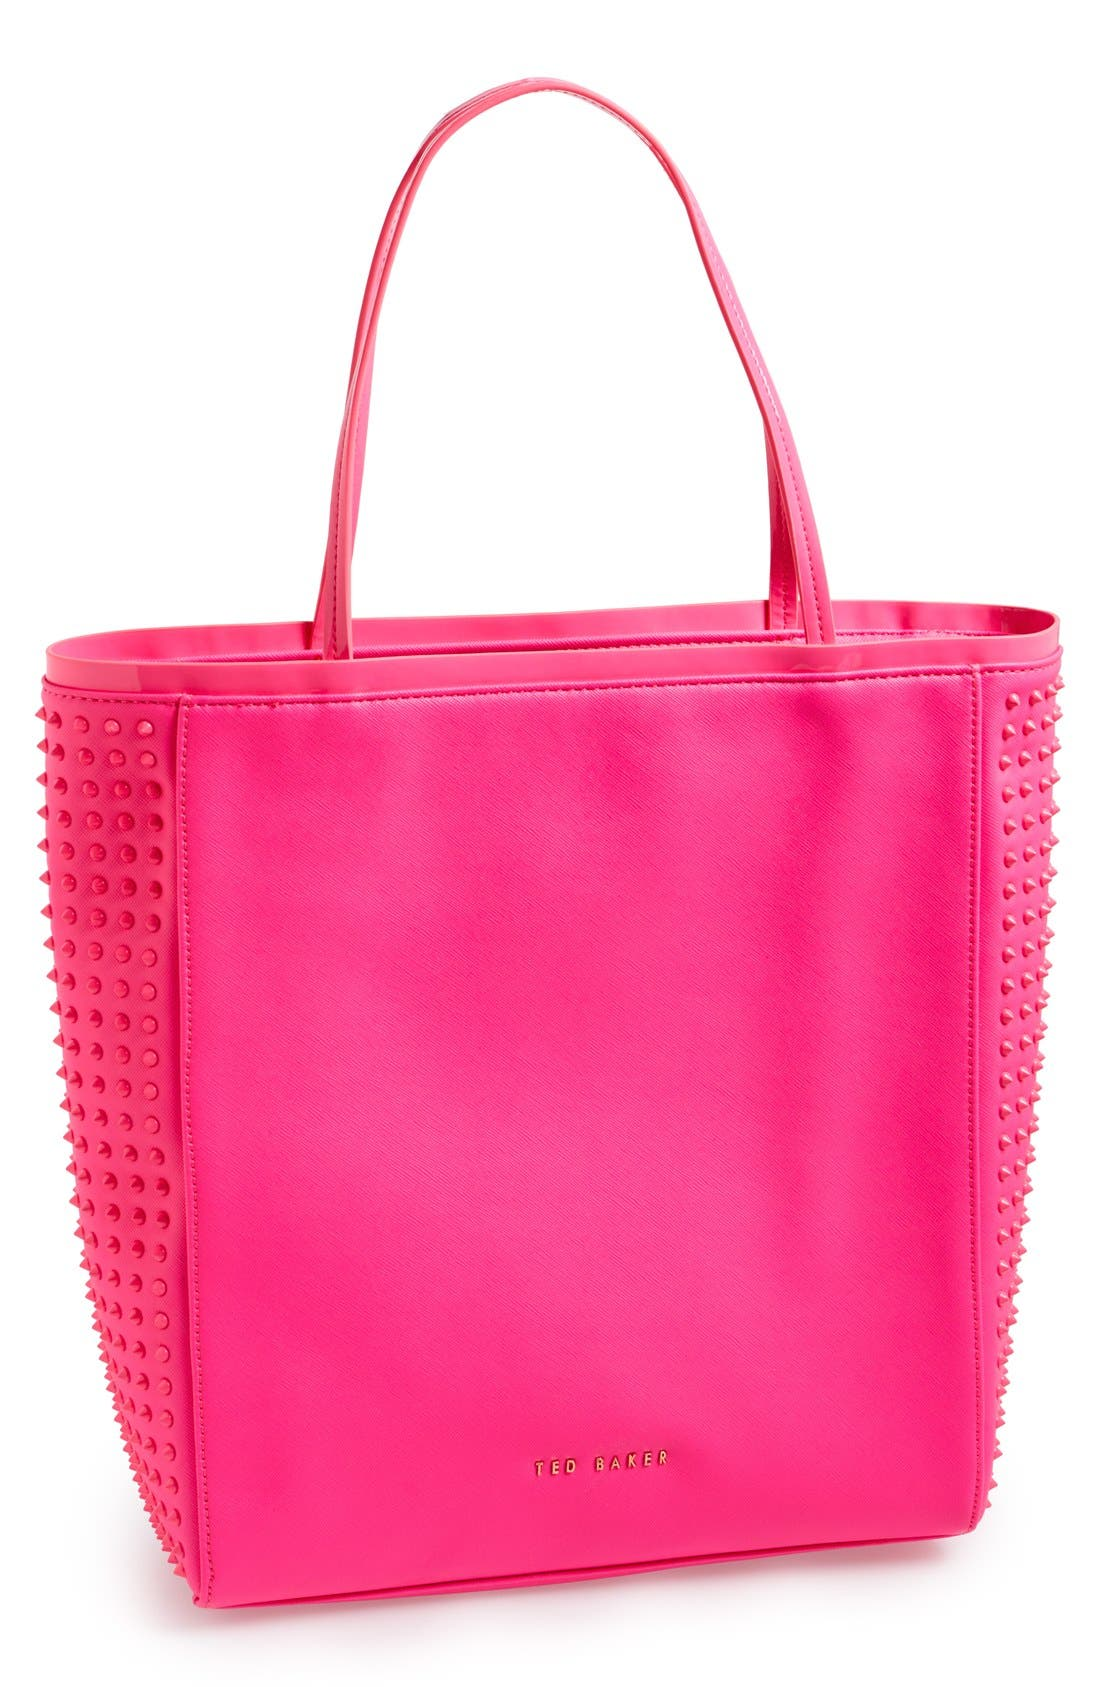 Main Image - Ted Baker London 'Studded Crosshatch' Tote